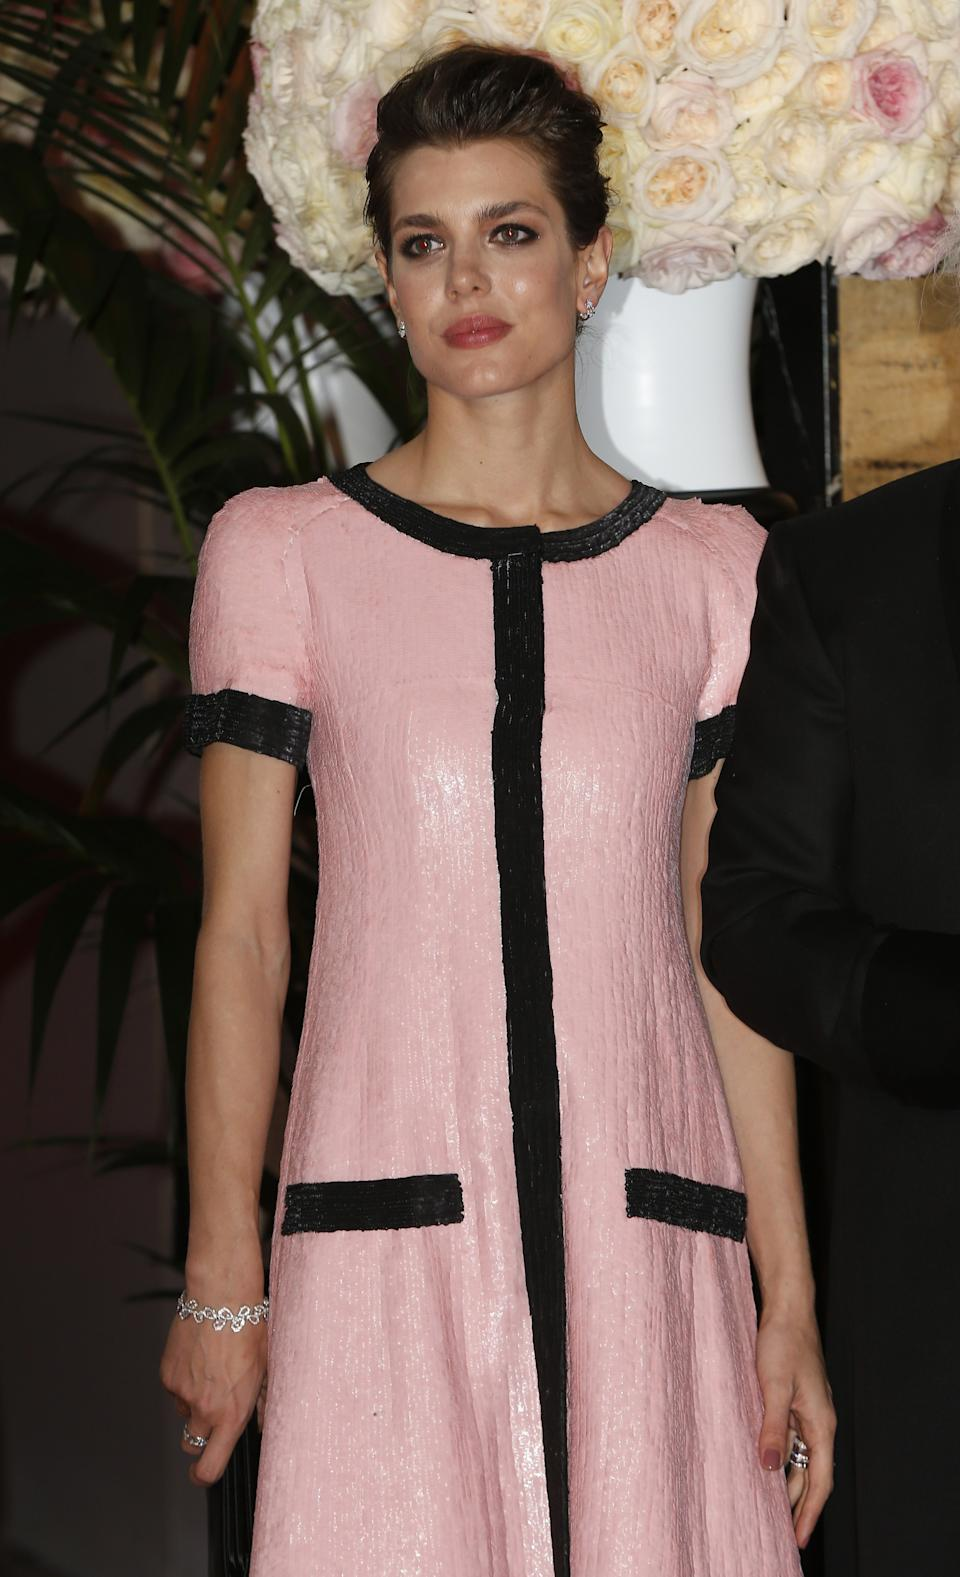 Charlotte Casiraghi arrives for the annual Rose Ball at the Monte-Carlo Sporting Club in Monaco, on March 28, 2015. The Rose Ball is one of the major charity events in Monaco. Created in 1954, it benefits the Princess Grace Foundation. AFP PHOTO / VALERY HACHE        (Photo credit should read VALERY HACHE/AFP via Getty Images)